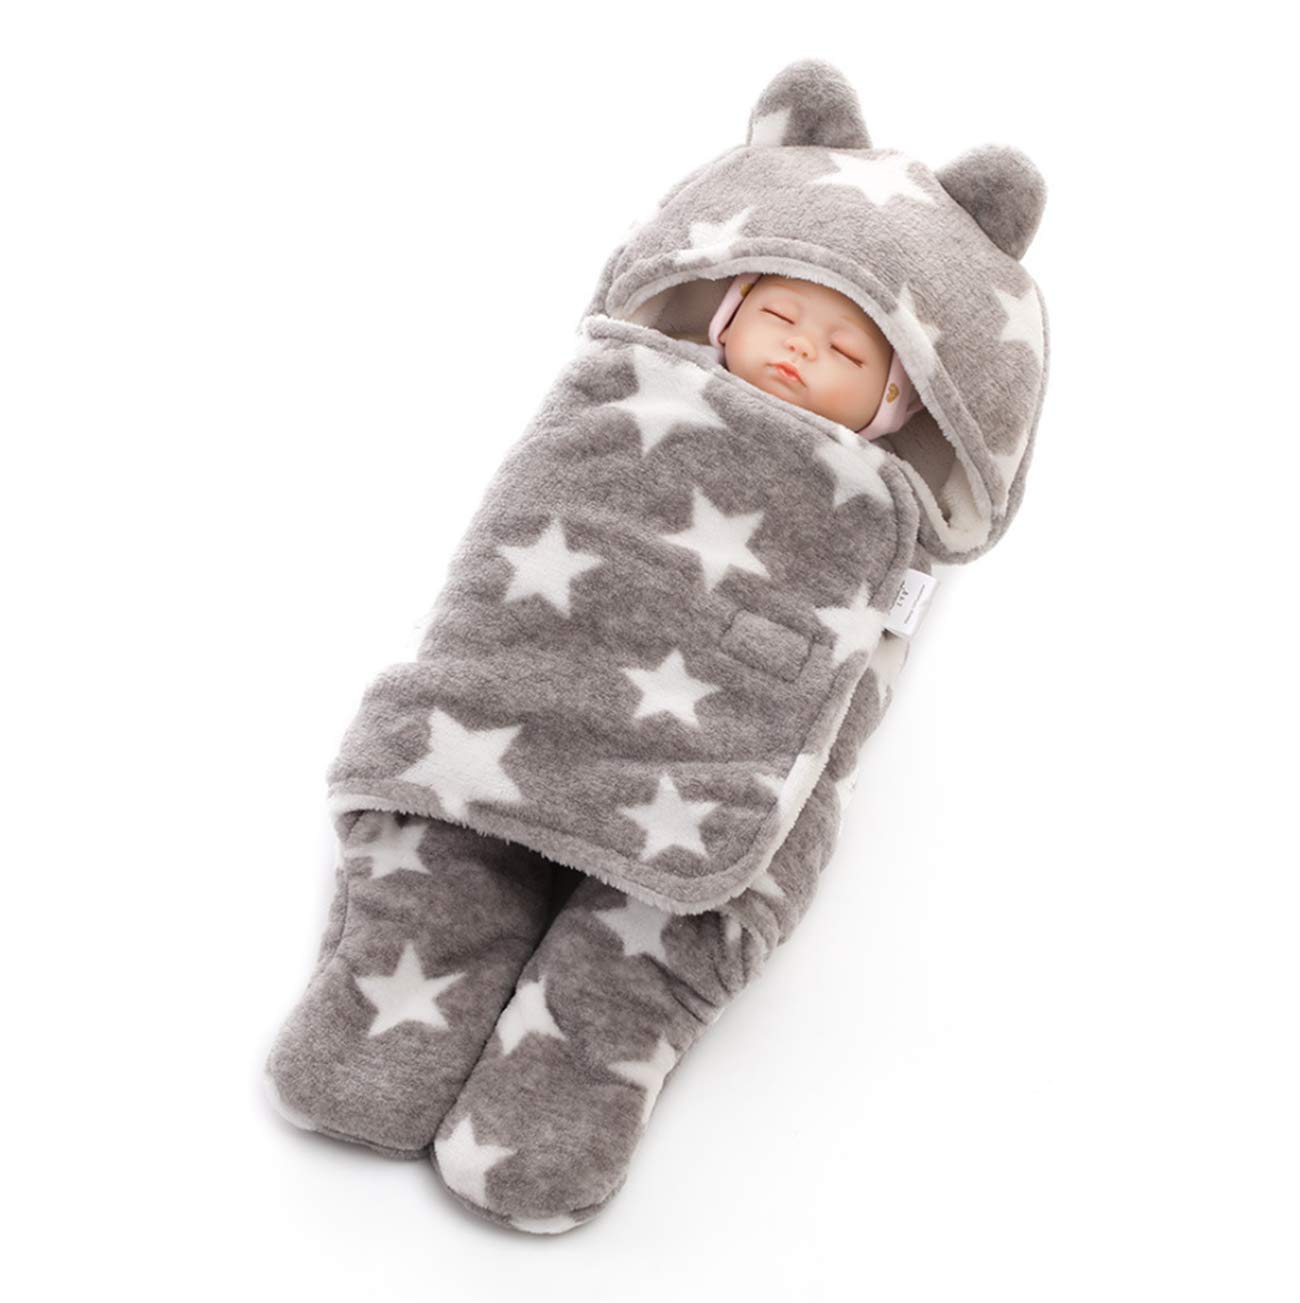 XIUHAO Newborn Sleeping Bag, Baby Bag, Hat with Thick Print Comfortable and Warm, for Small Baby Stroller by XIUHAO